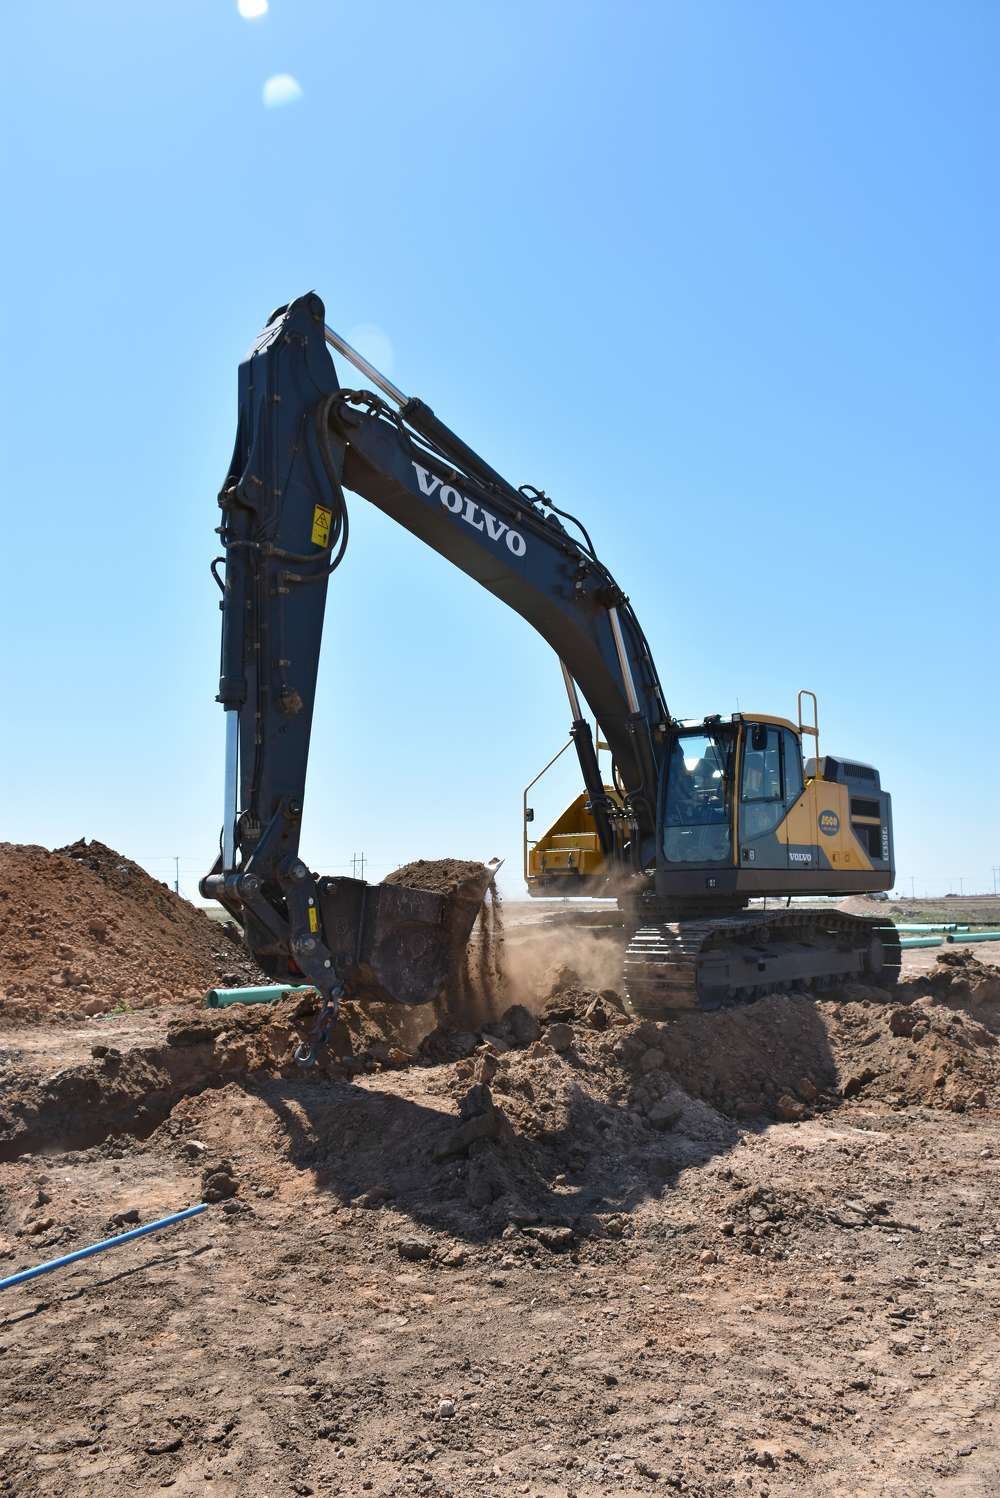 According to Volvo, the EC350E yields superior digging and breakout forces, making it the ideal moneymaking partner for Amarillo Utility Contractors